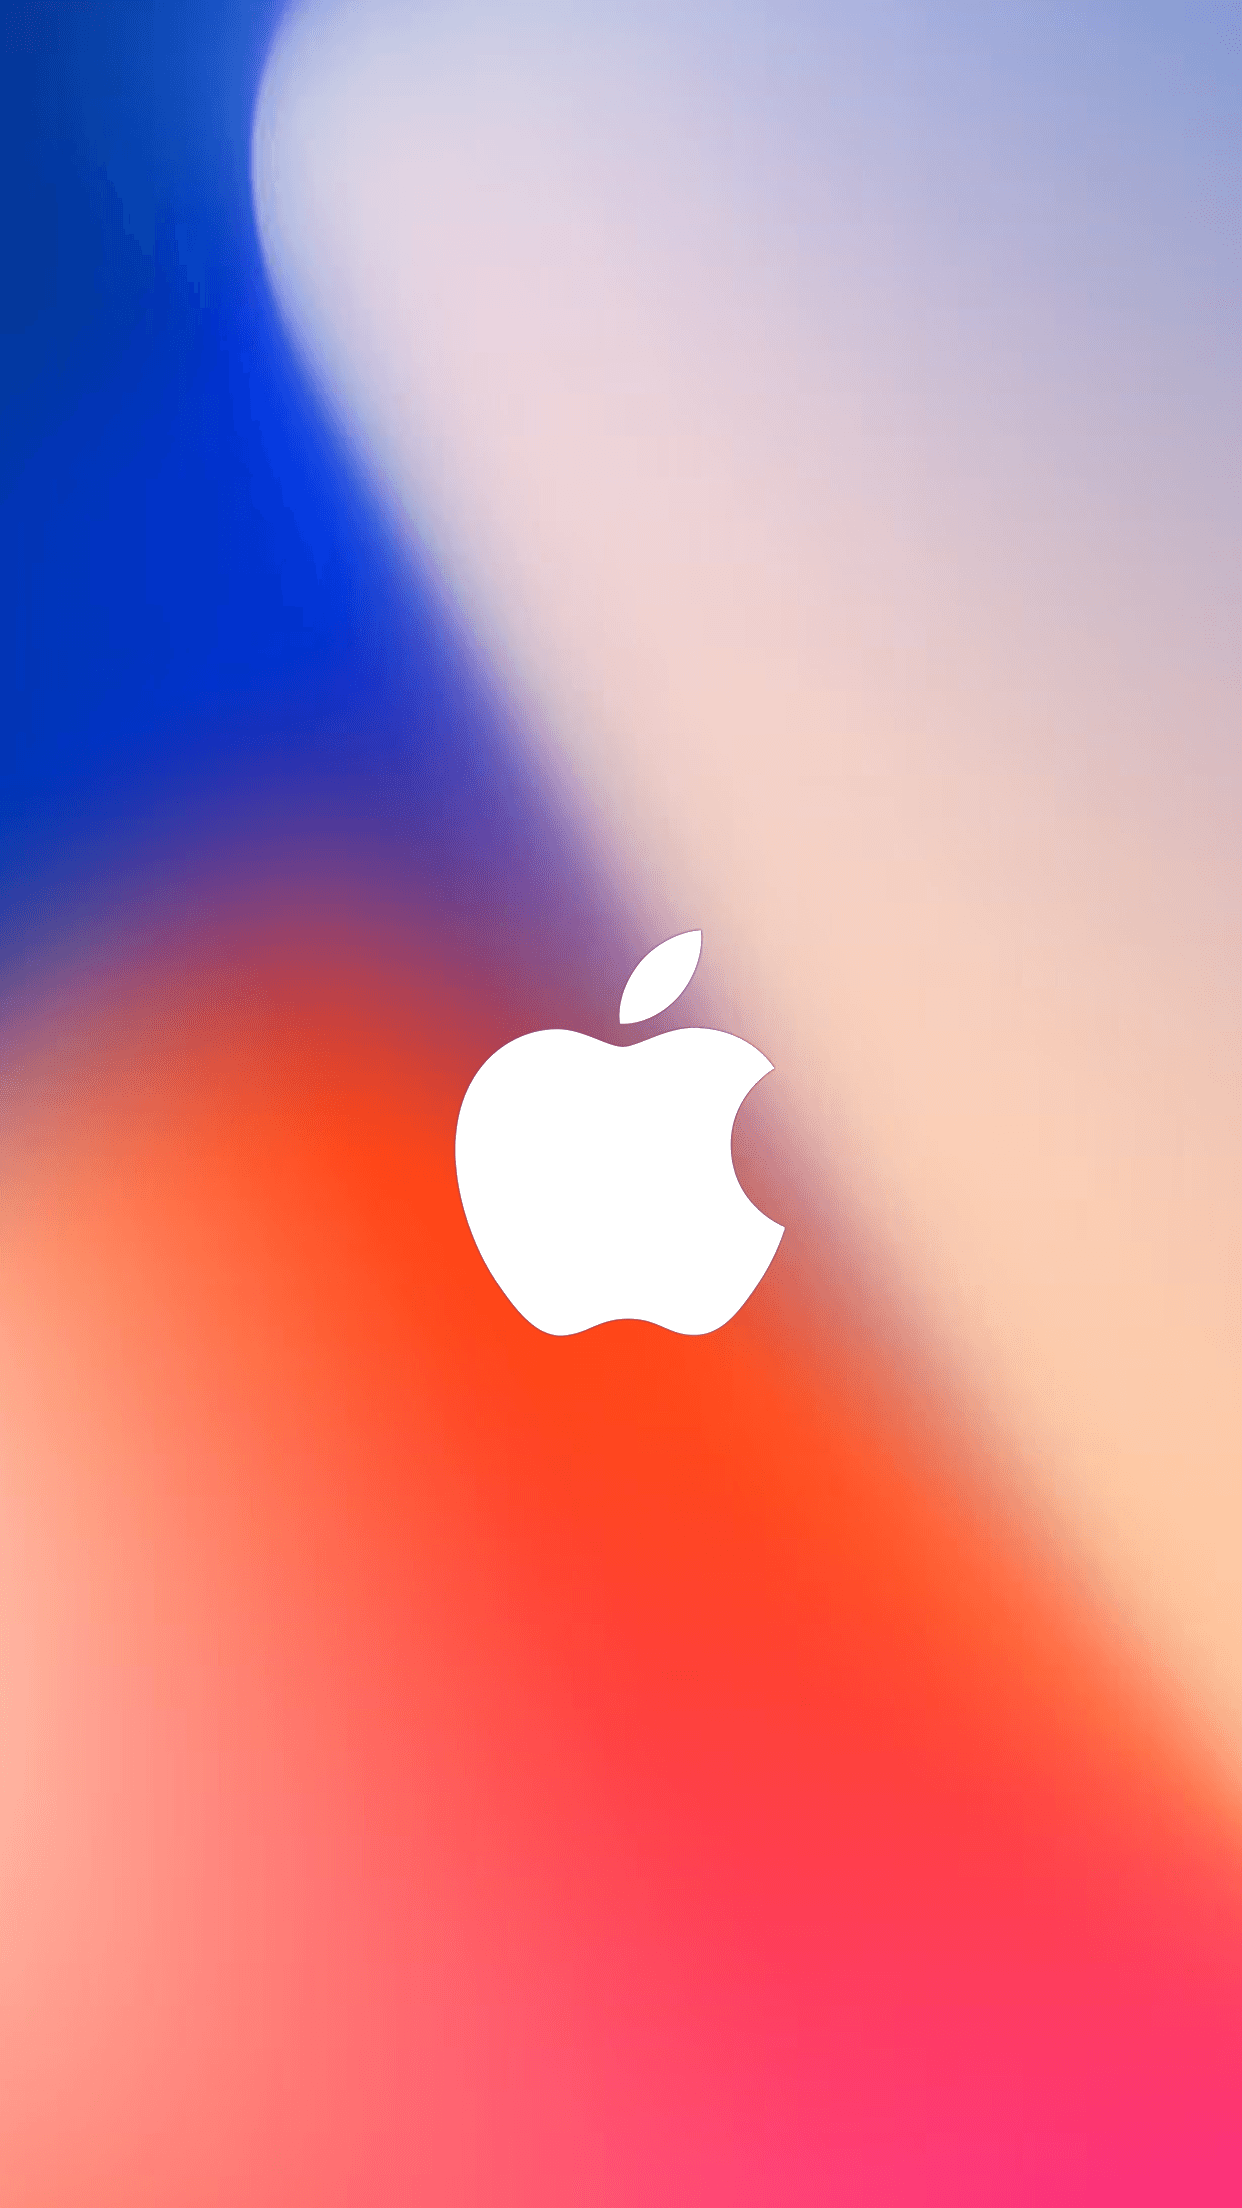 Iphone Apple Wallpapers Wallpaper Cave